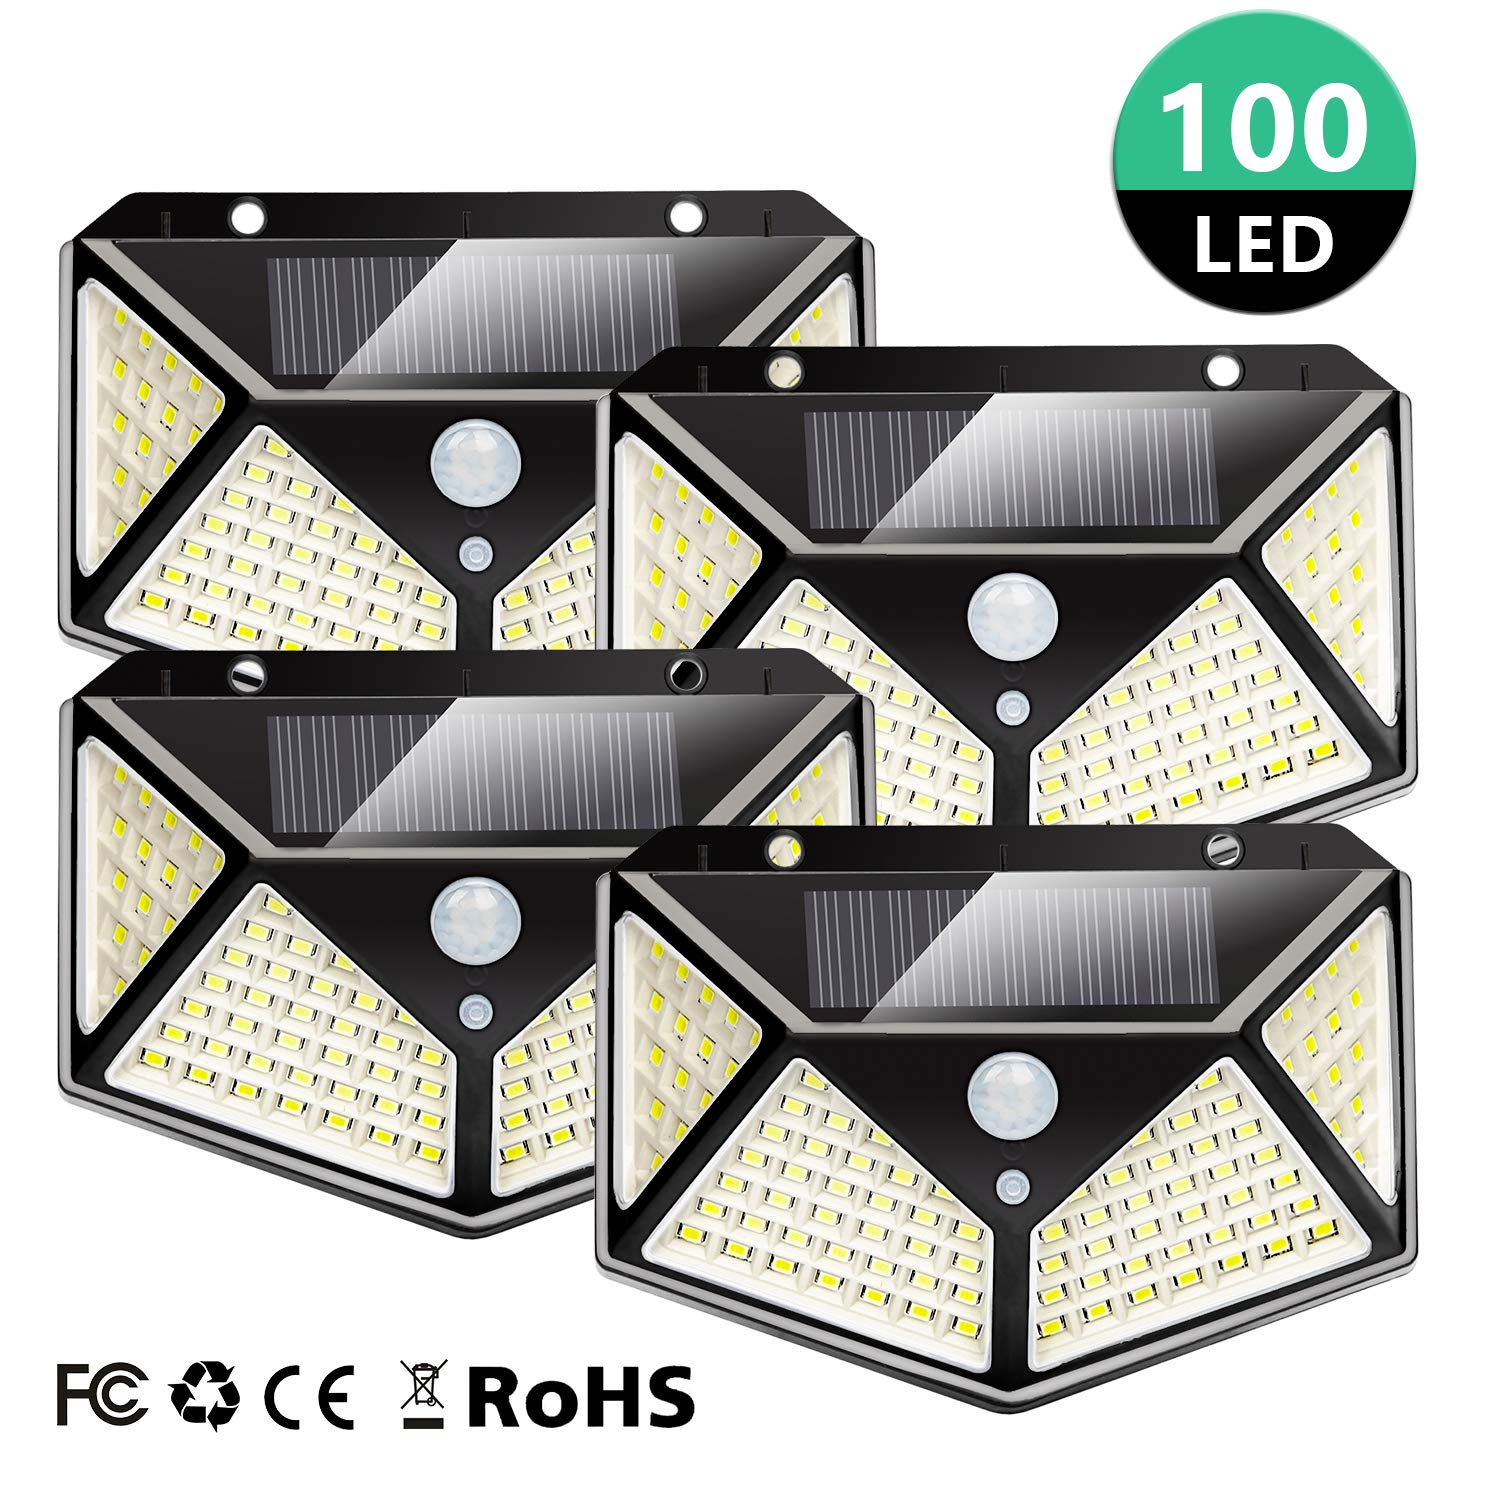 Otdair Solar Lights 100 LED Outdoor, 270° Wide Angle Wall Light, Solar Motion Sensor Light with 3 Modes Security Lights Wireless Waterproof for Outdoor, Front Door, Porch, Garage, Yard, 4 Pack